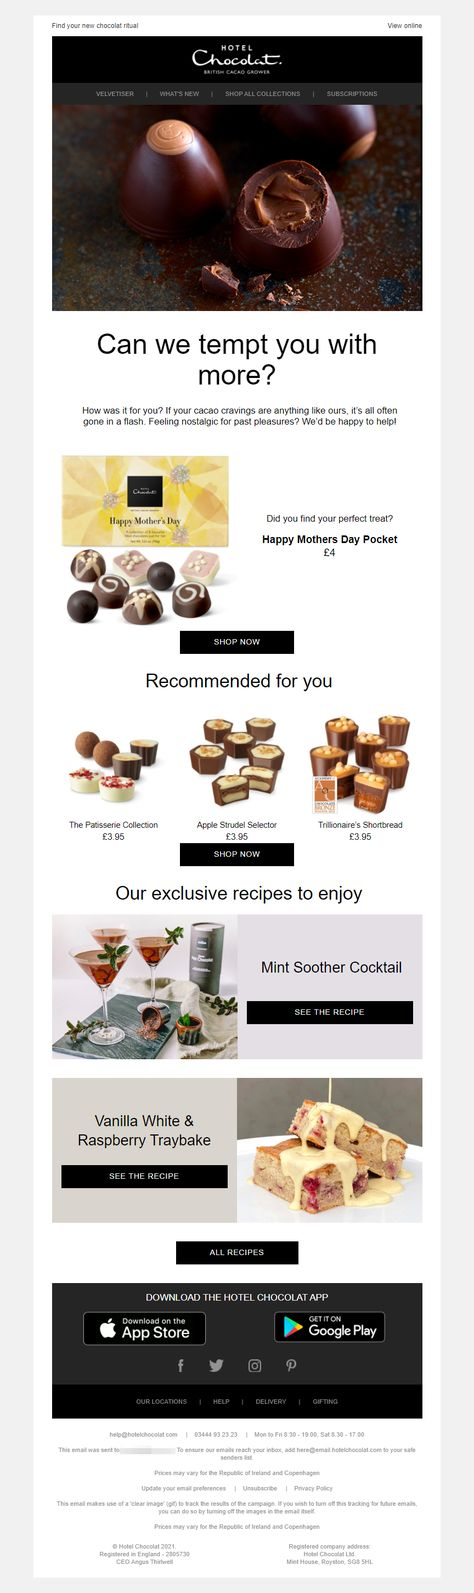 Luxury Chocolates and Chocolate Gifts